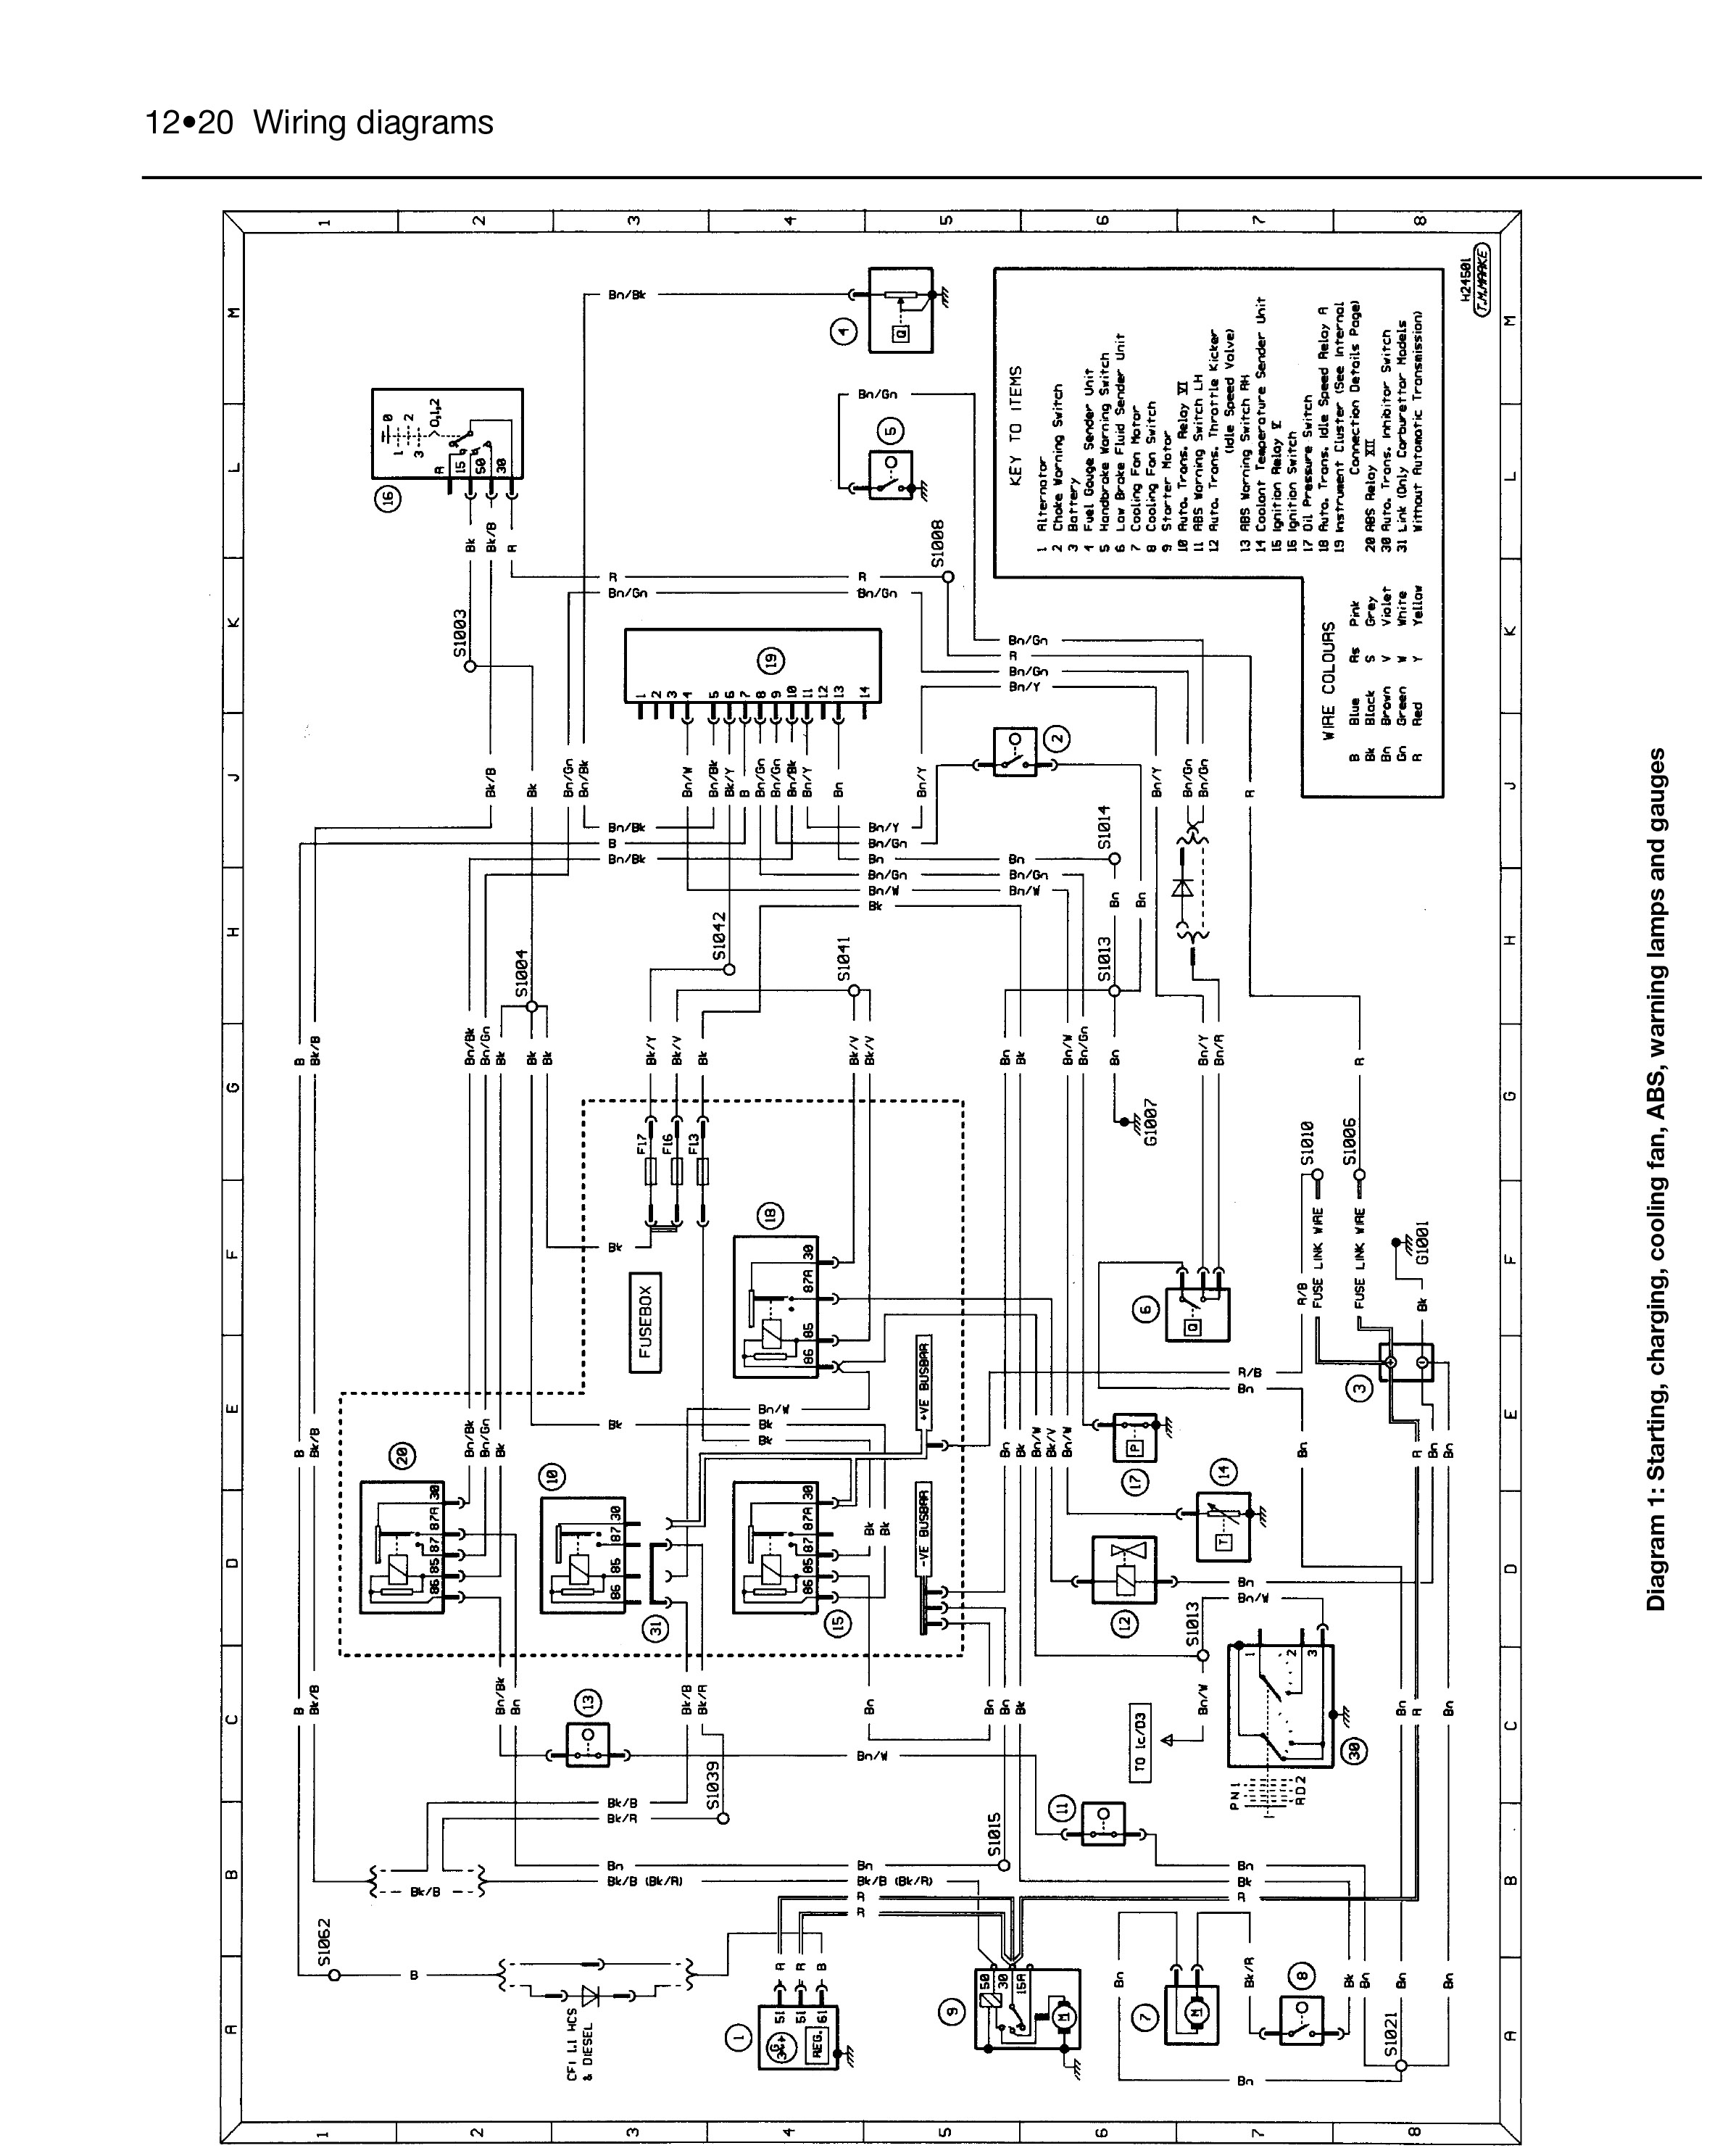 SN_0862] Ford Fiesta Mk5 Wiring Diagram Wiring Diagram Download DiagramIcal Gram Botse Itis Viewor Mohammedshrine Librar Wiring 101